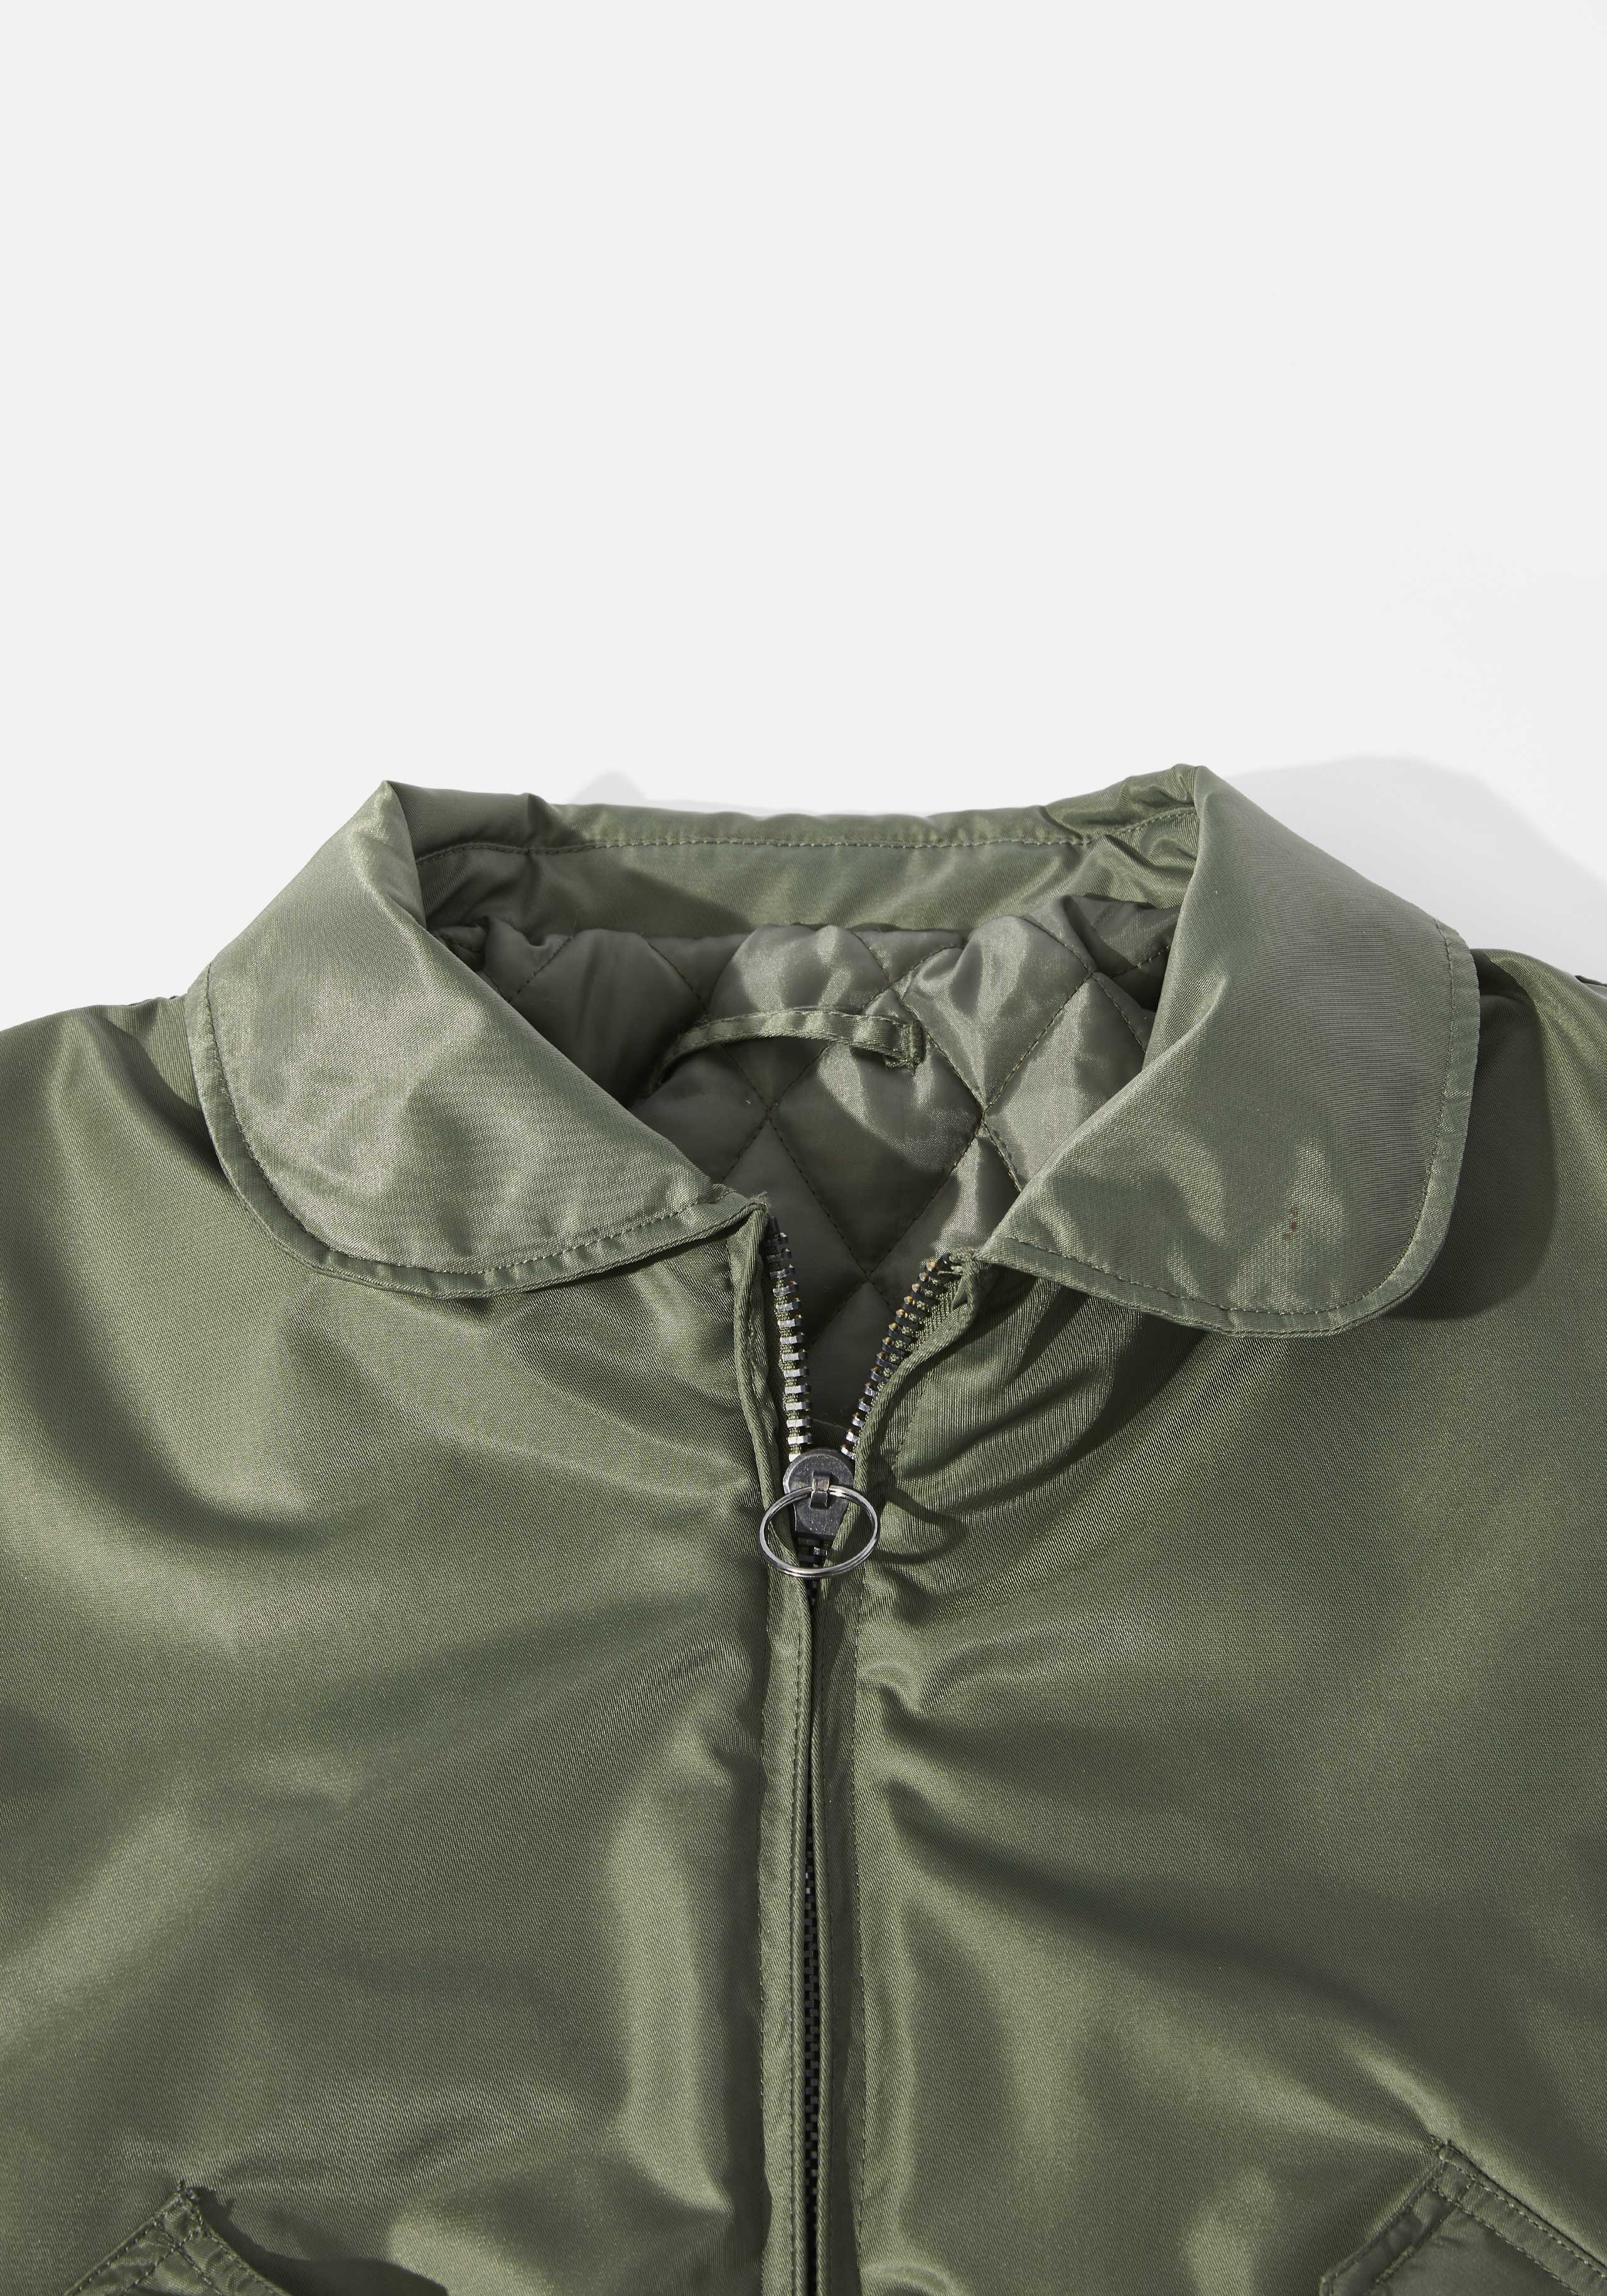 mki ma2 flight jacket 3